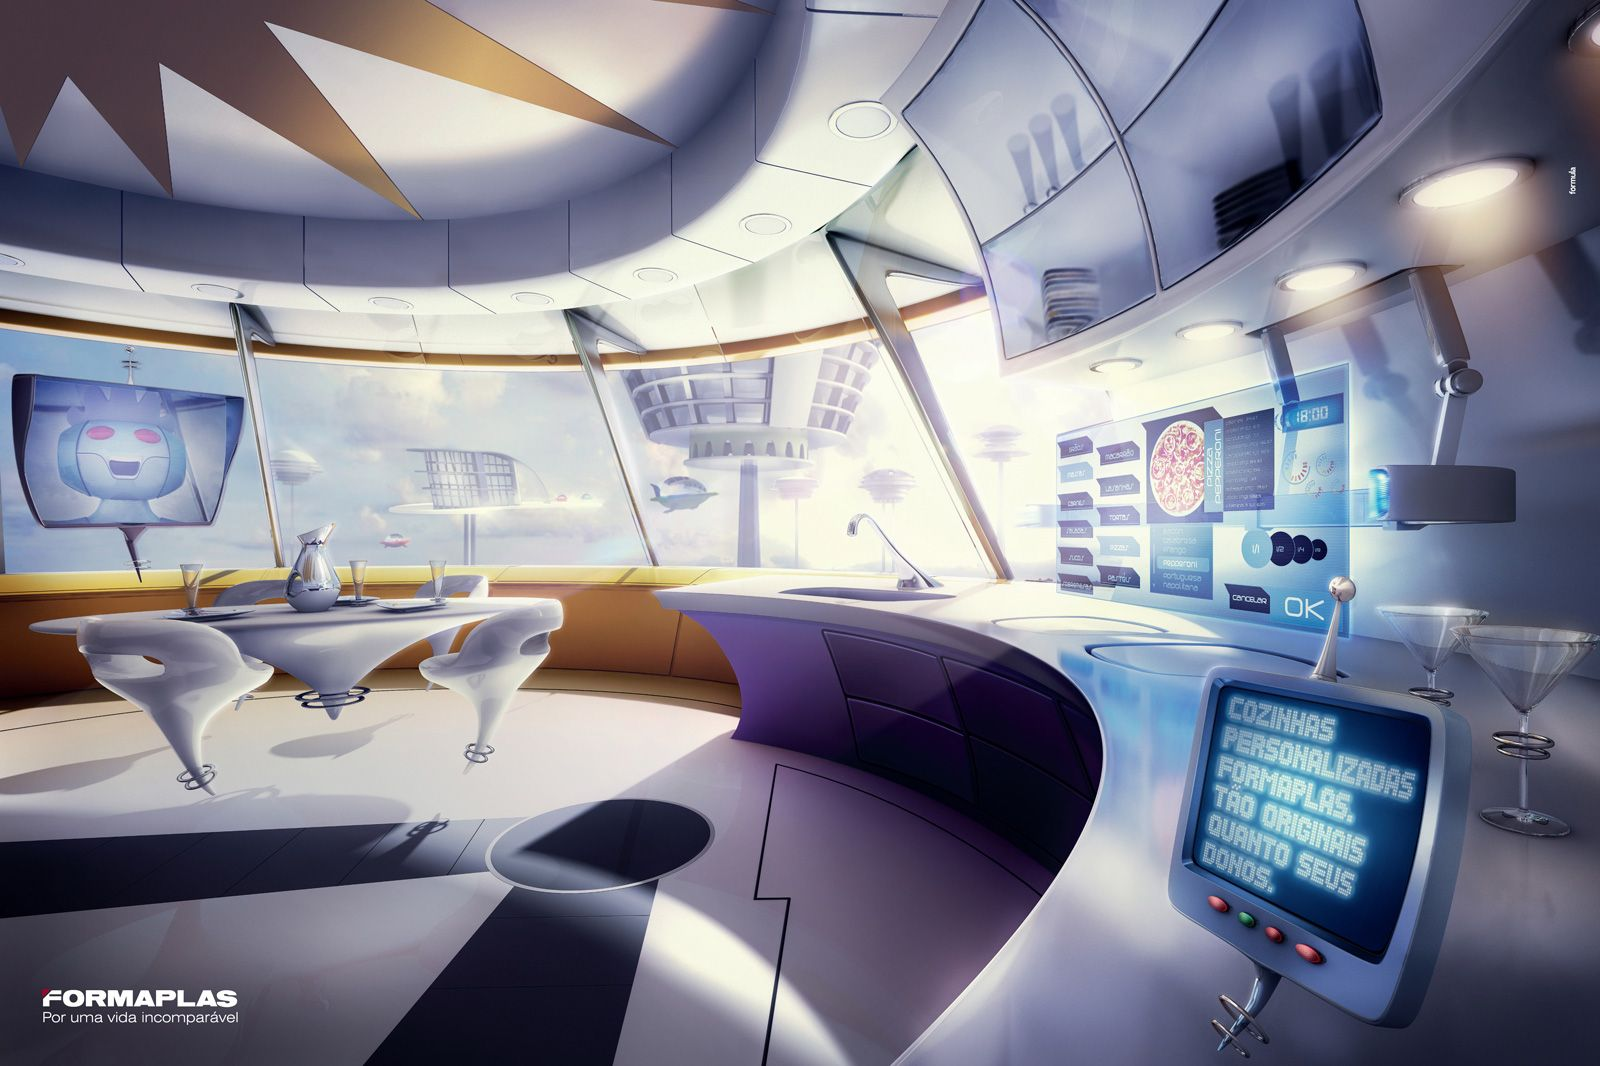 Futuristic Interior Future Cyberpunk The Jetsons